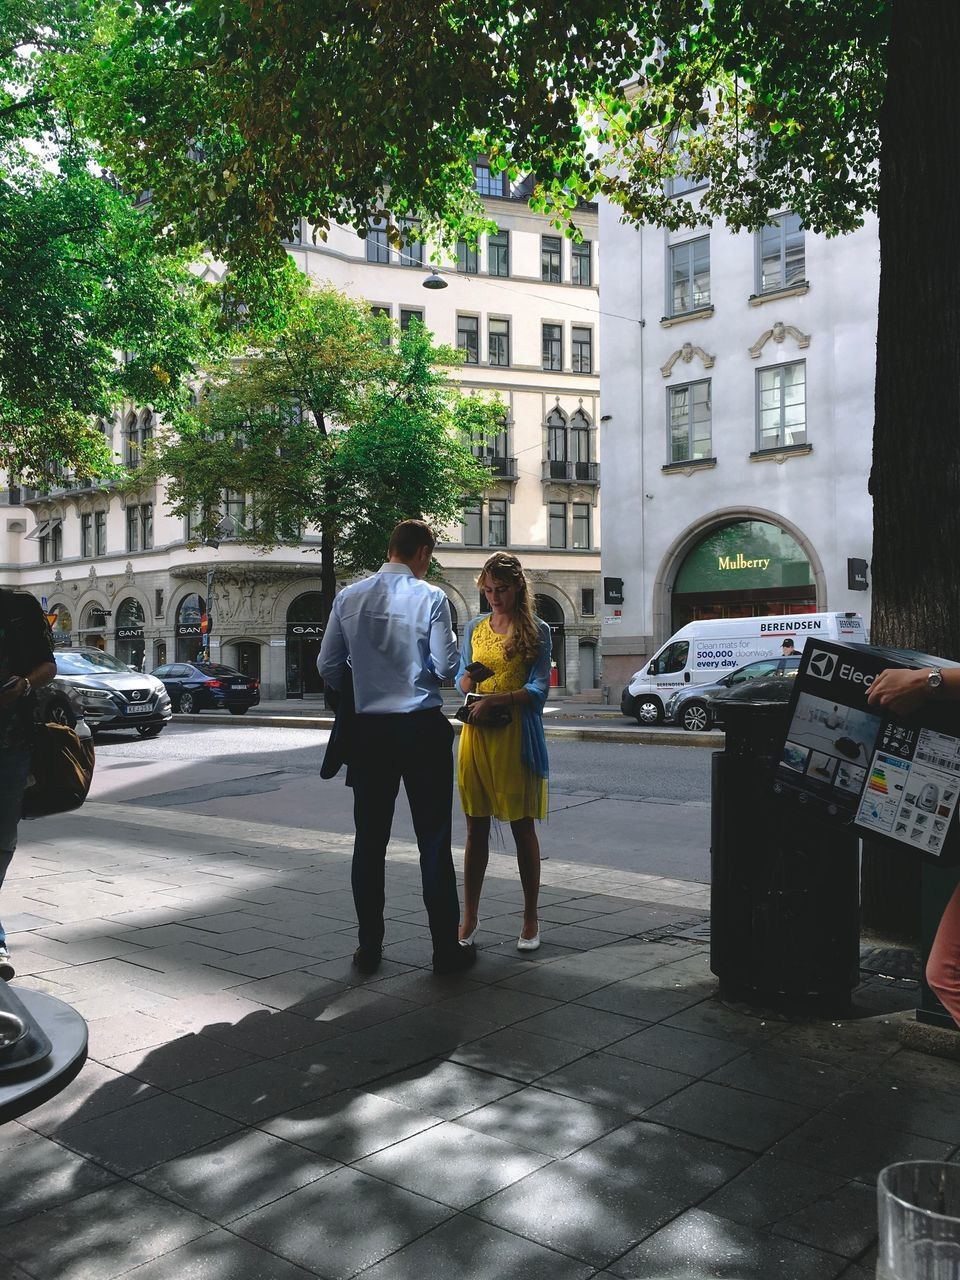 architecture, real people, building exterior, city, two people, built structure, full length, incidental people, tree, men, mode of transportation, transportation, women, day, motor vehicle, street, rear view, adult, plant, car, couple - relationship, outdoors